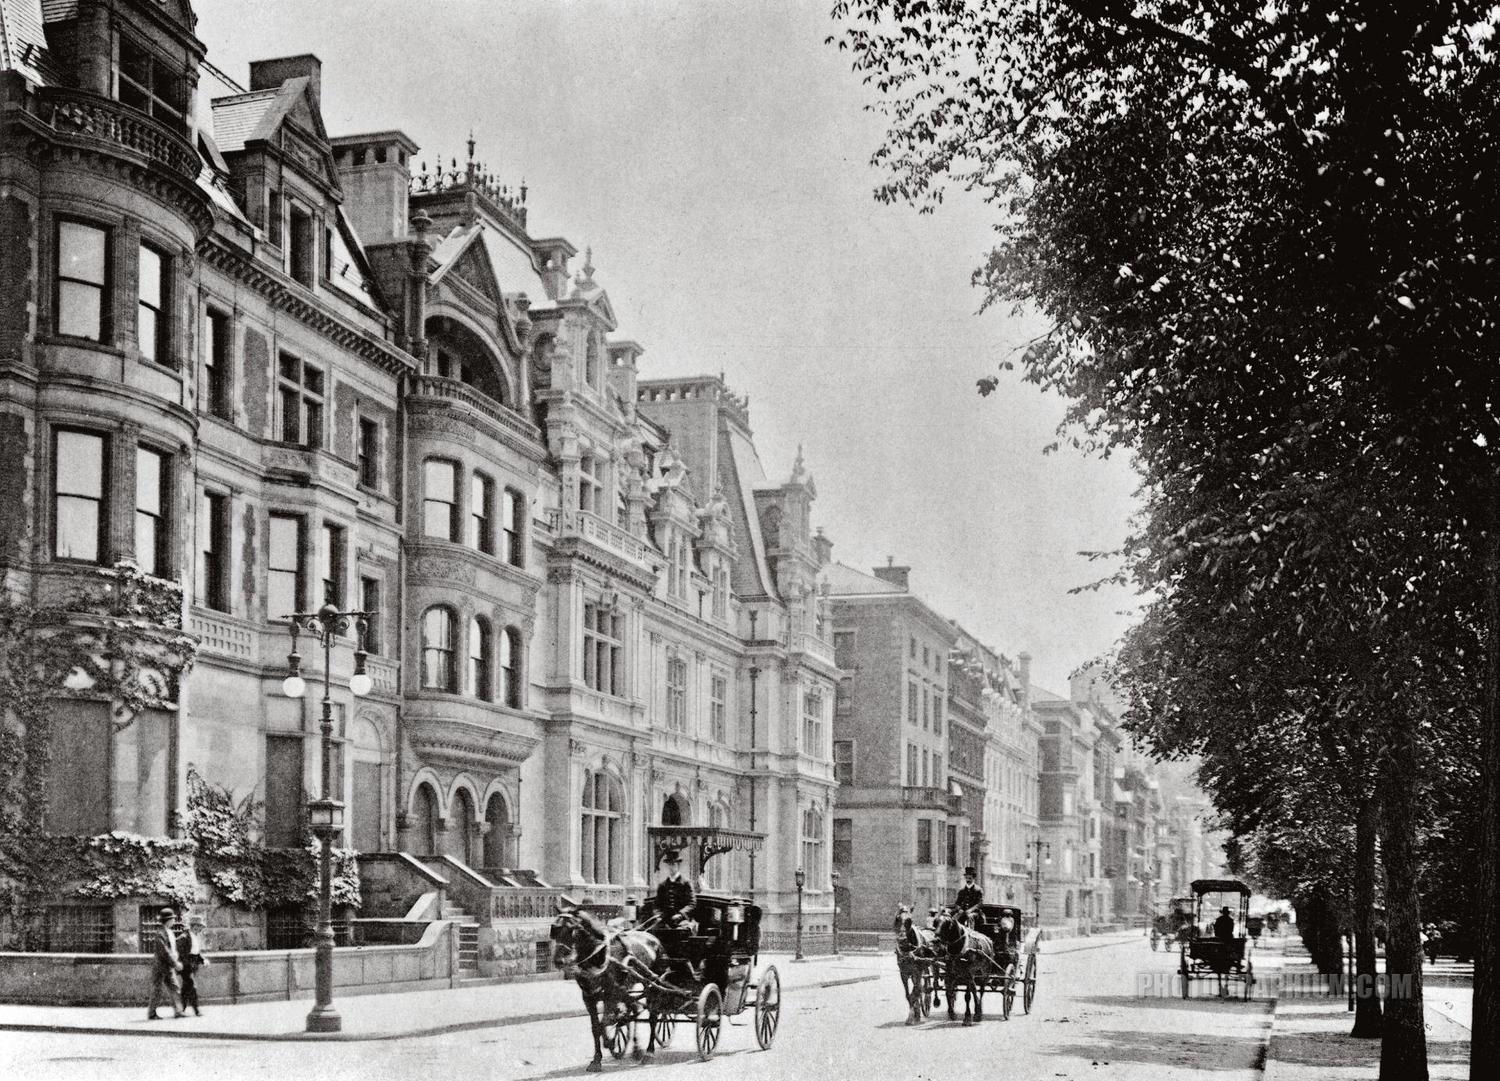 5th Avenue looking south from 66th Street, New York City, 1900